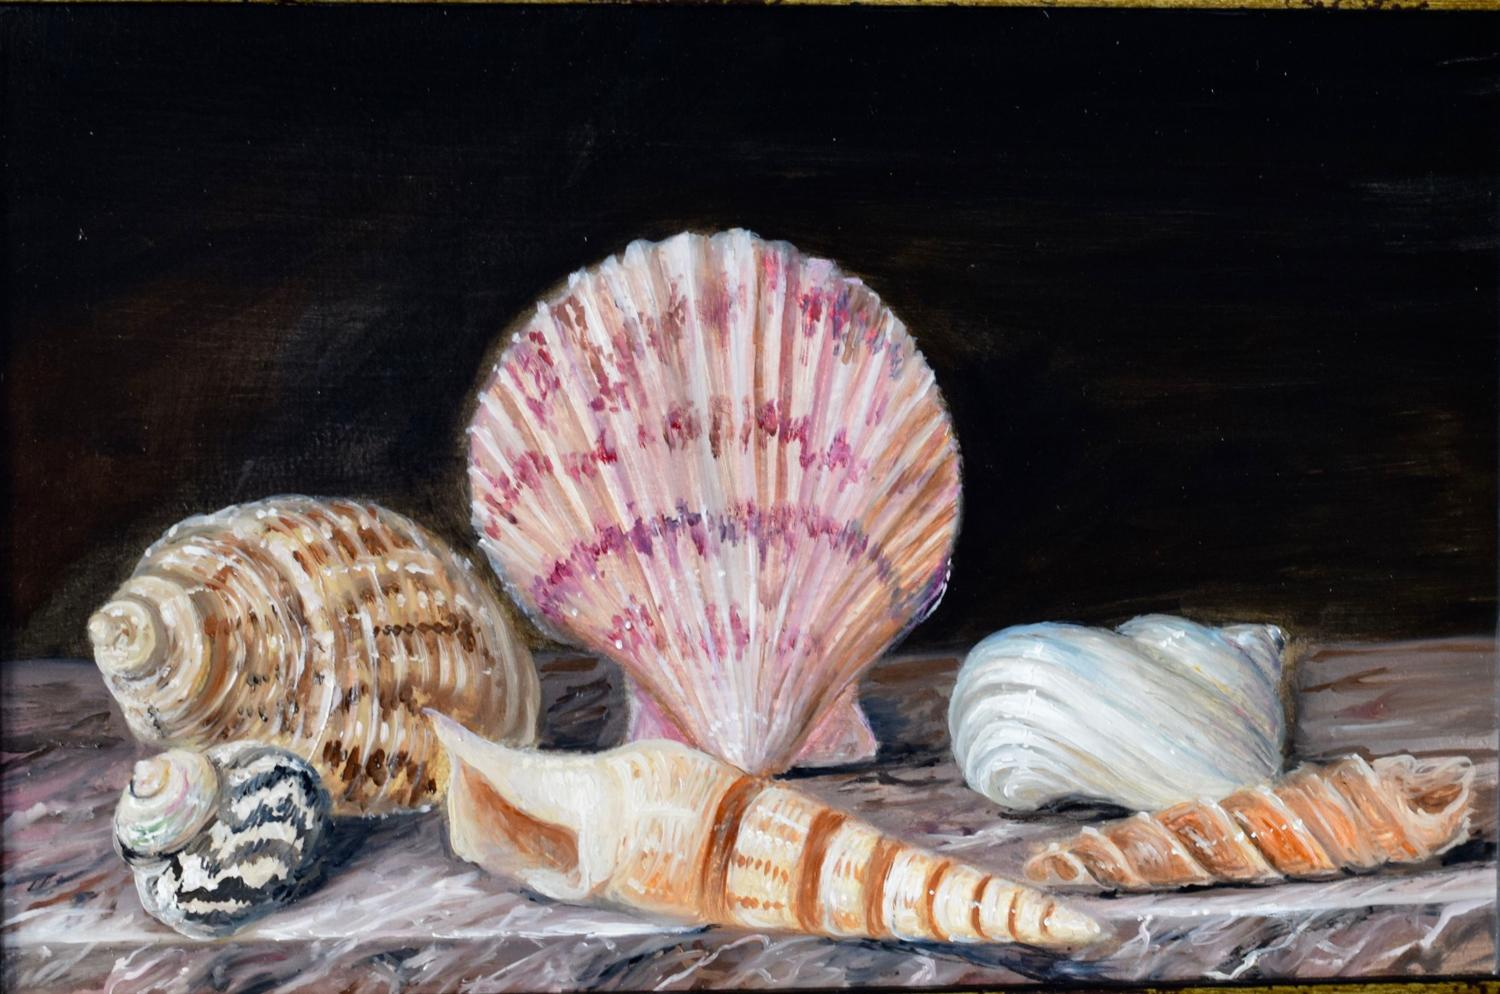 Shells on a marble top